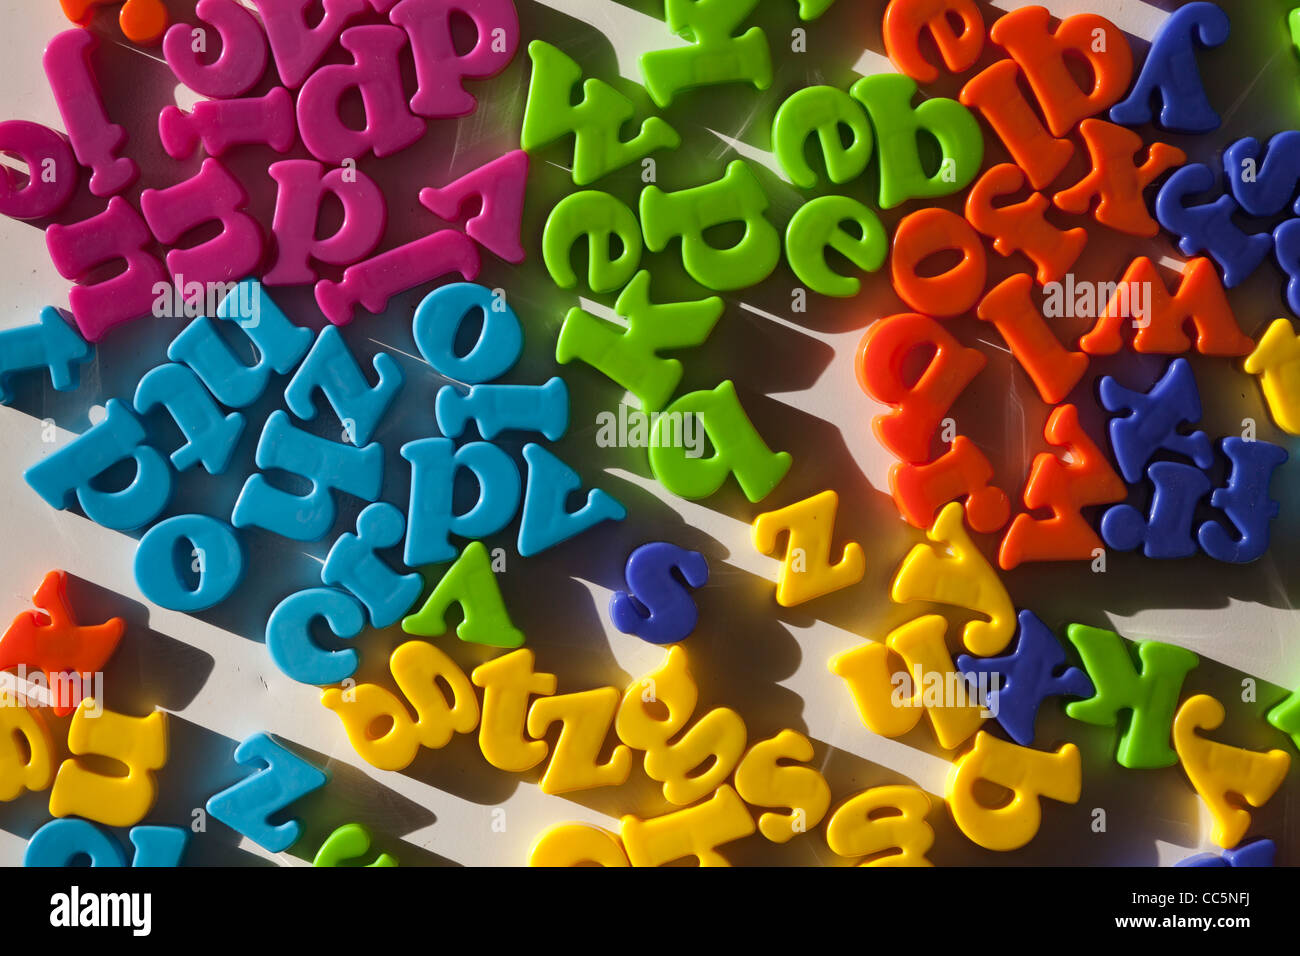 Colourful letters -fridge magnets - Stock Image